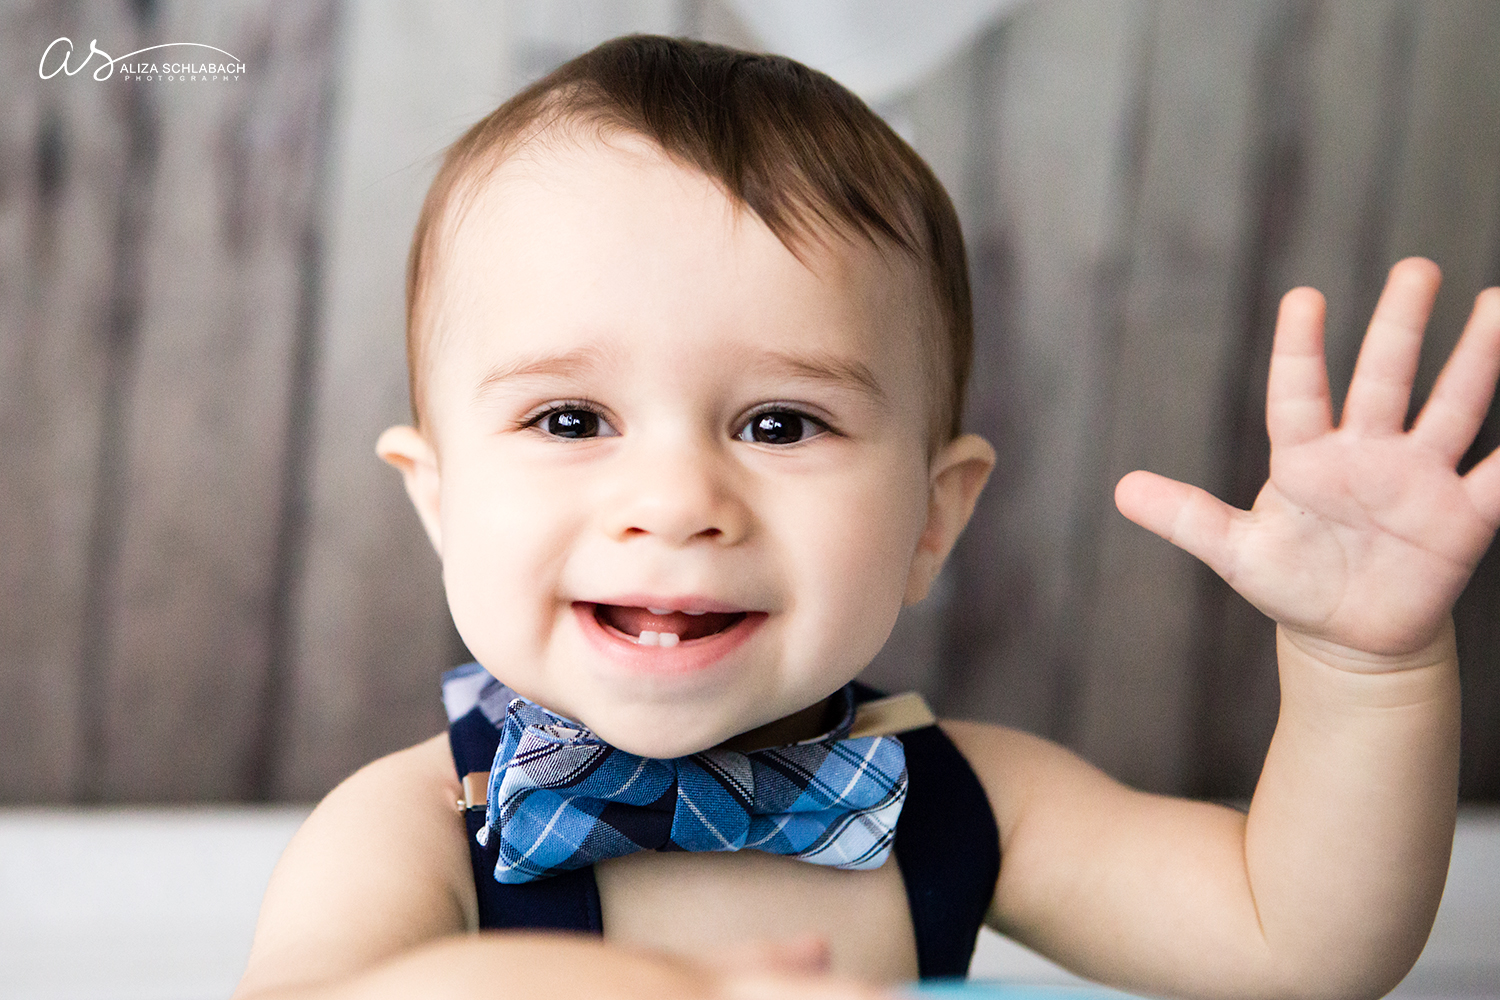 Baby with a bowtie waving at the camera